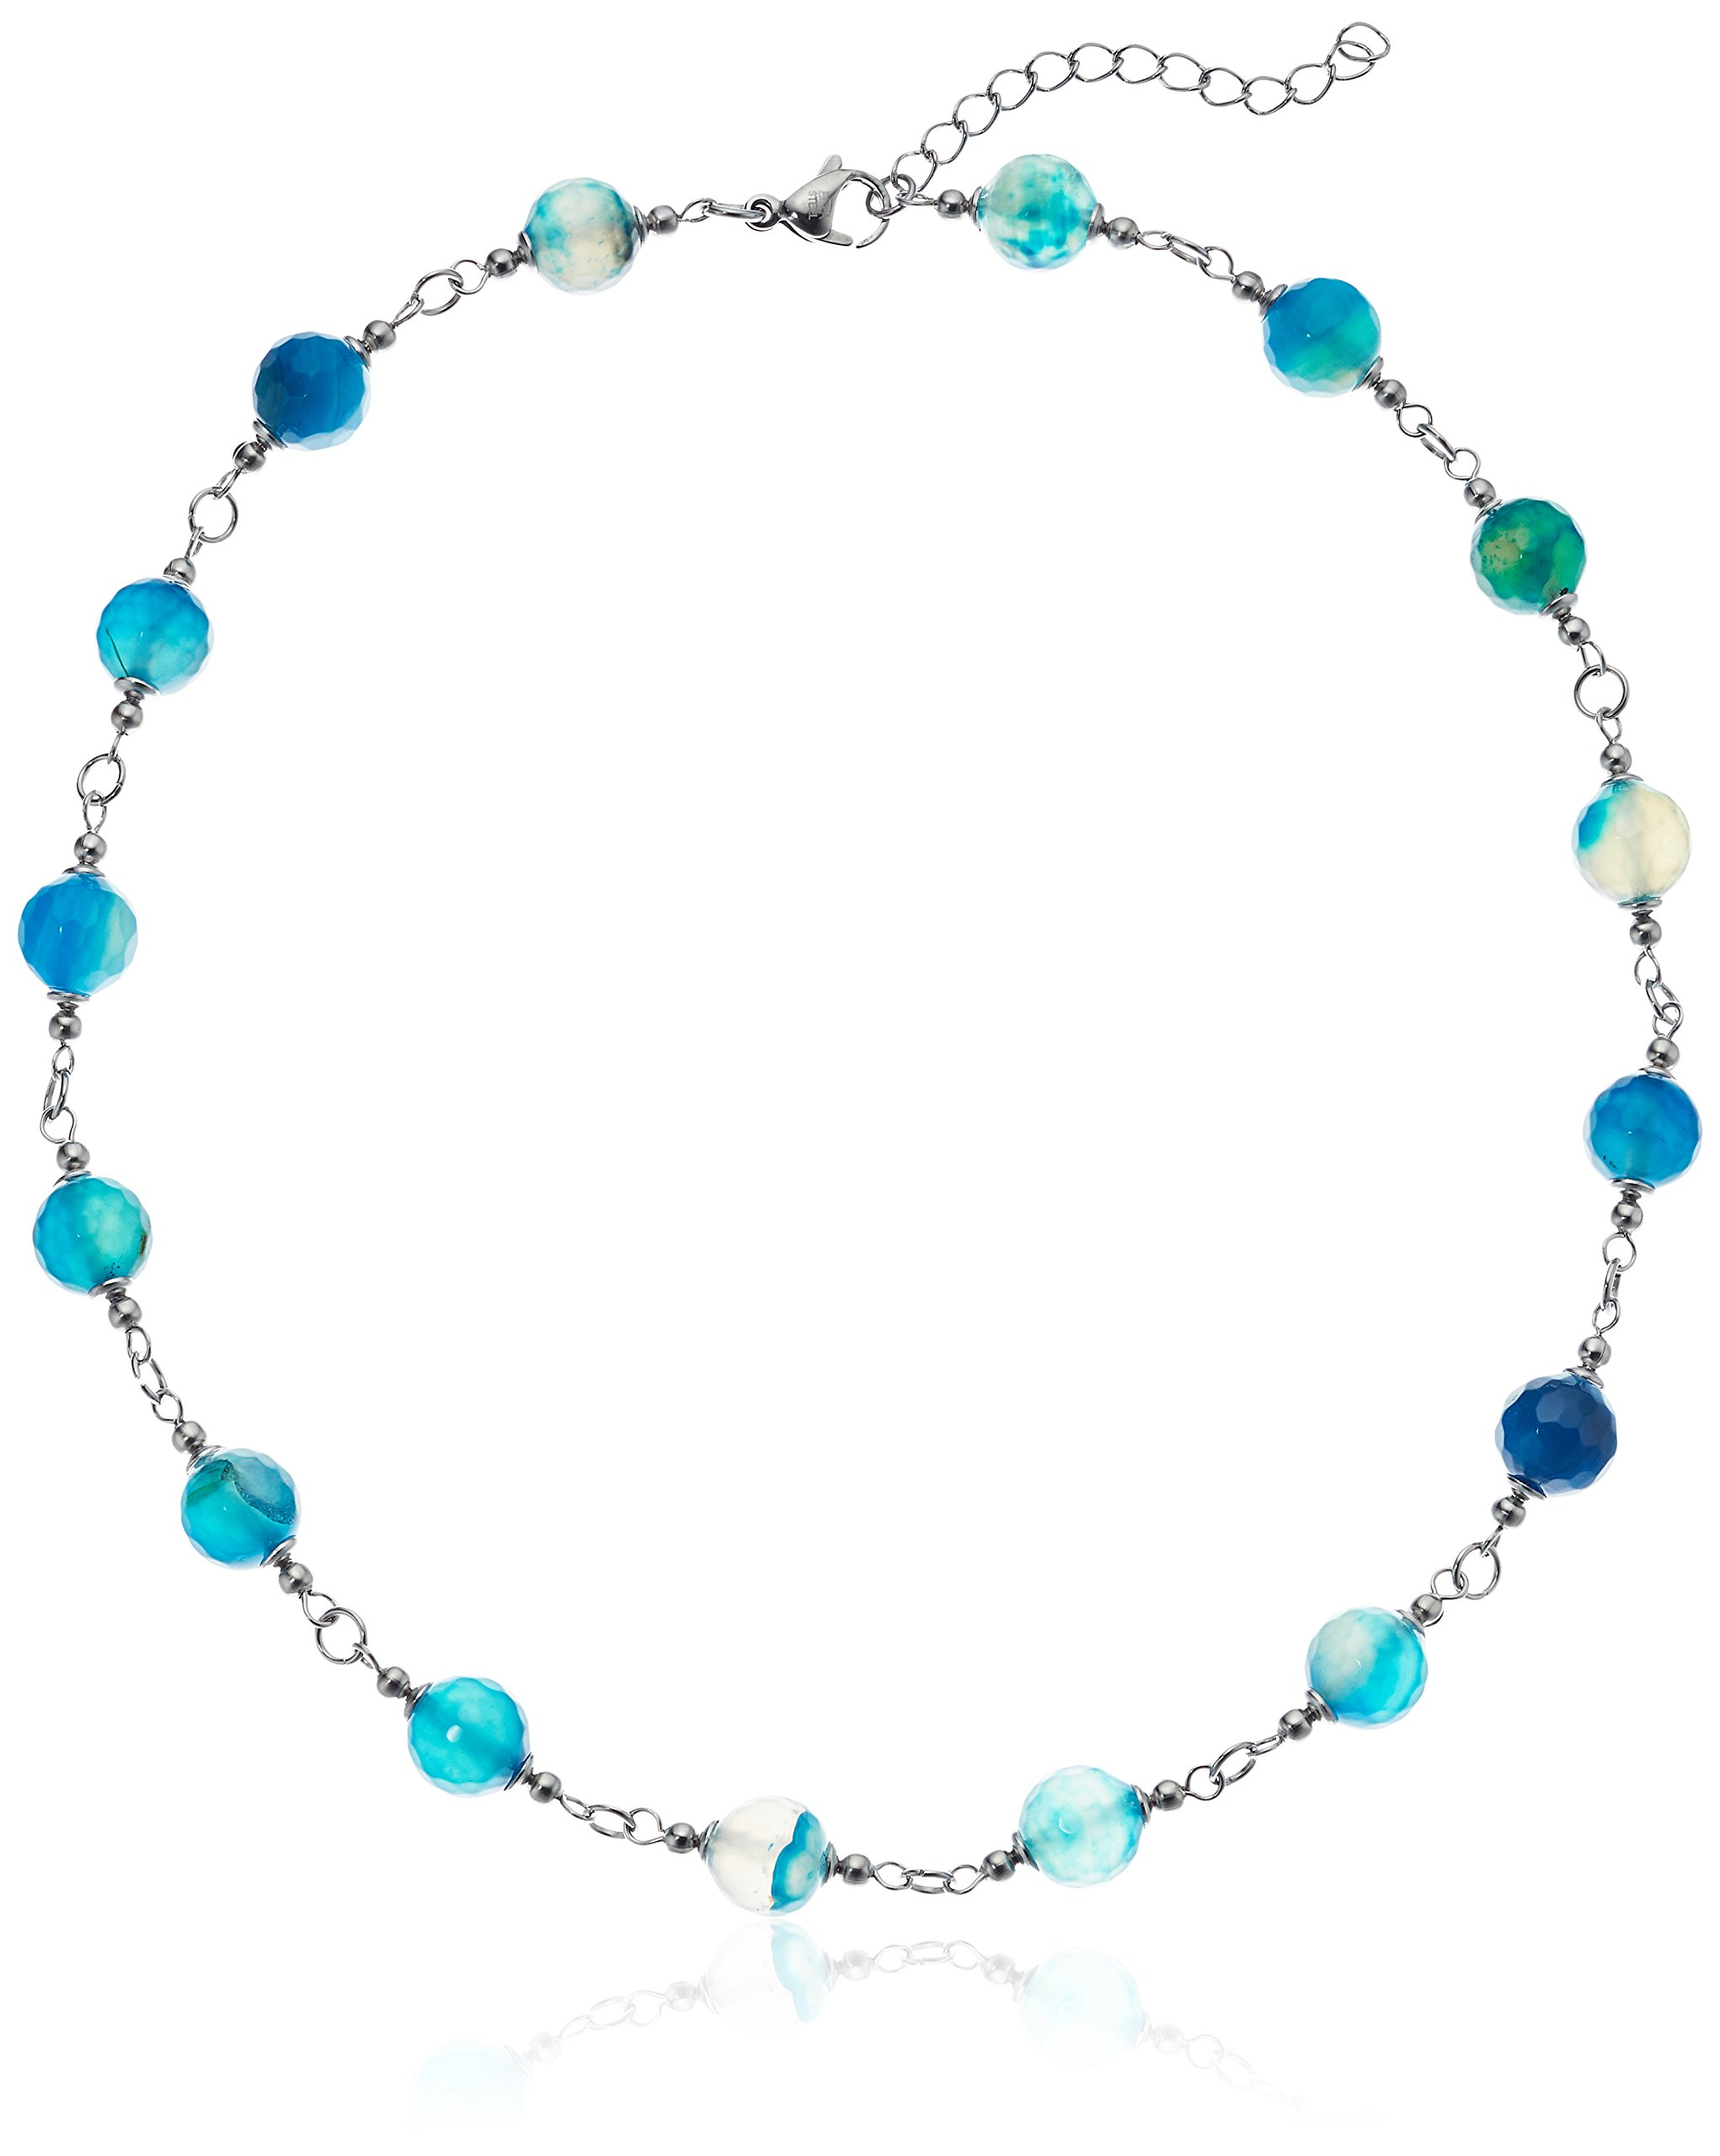 ELYA Jewelry Womens Stainless Steel Necklace With Blue Natural Agate Stones Strand Necklace, Blue, One Size